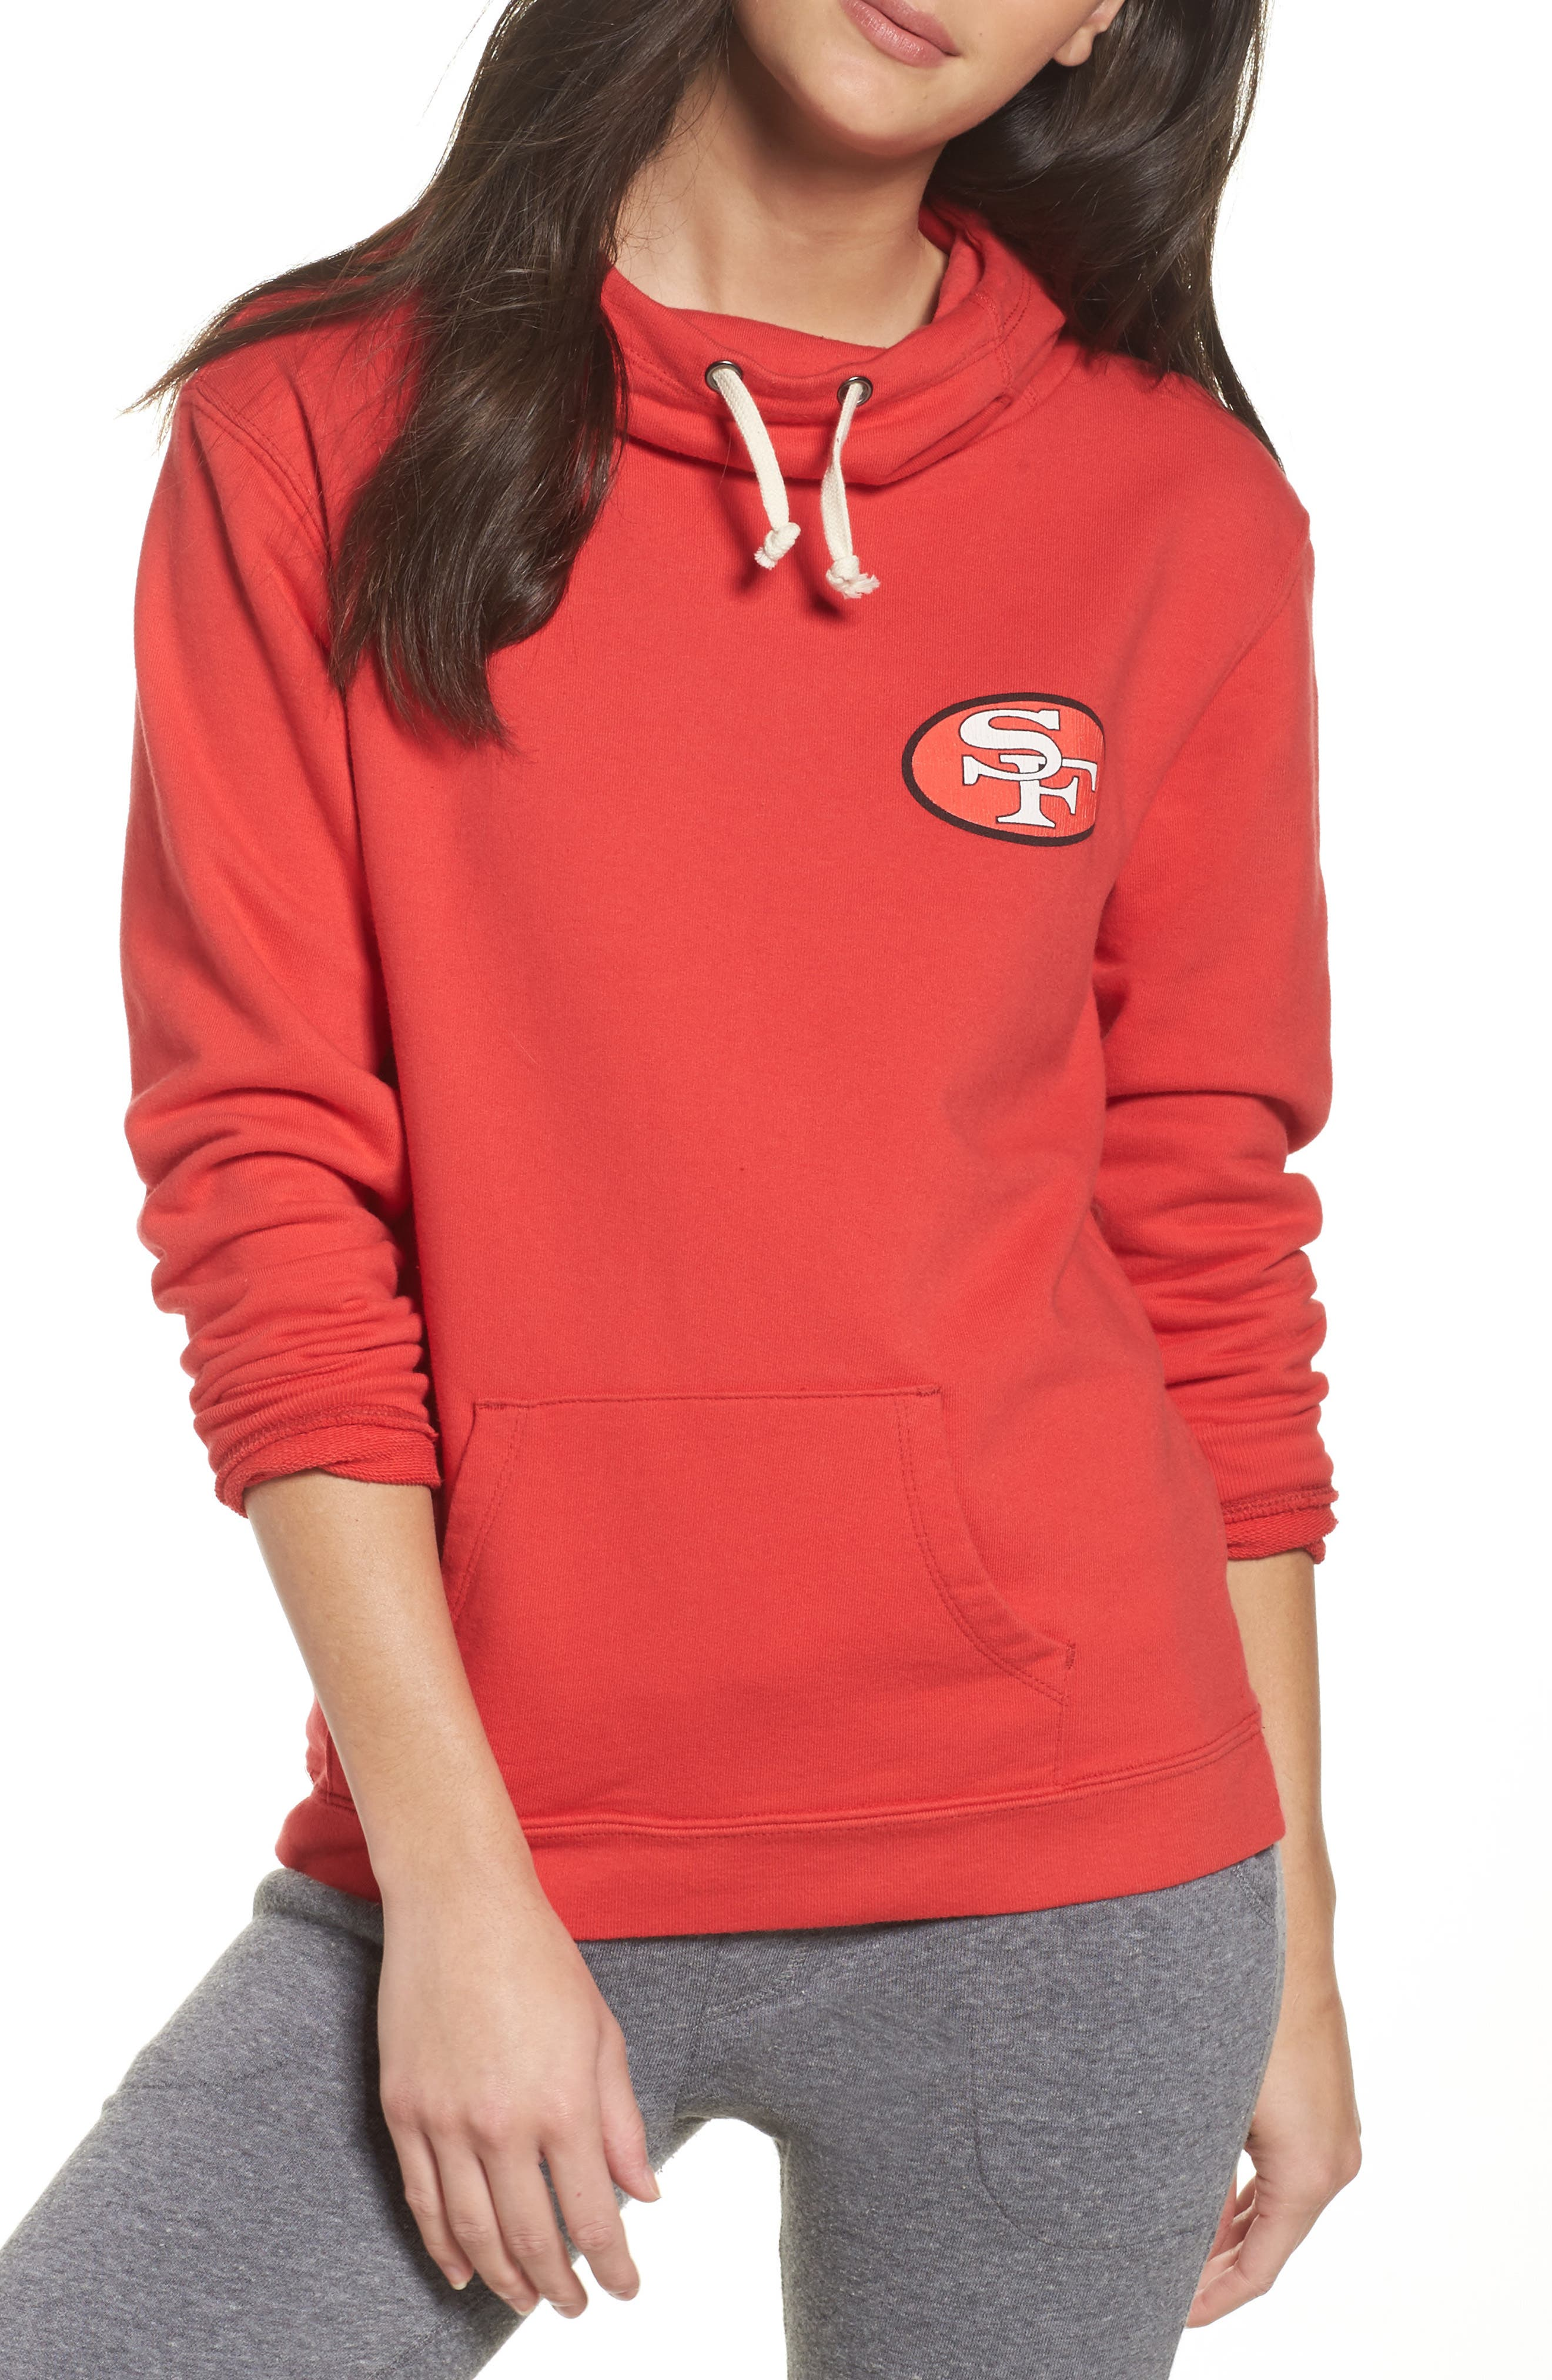 Main Image - Junk Food NFL San Francisco 49ers Sunday Hoodie